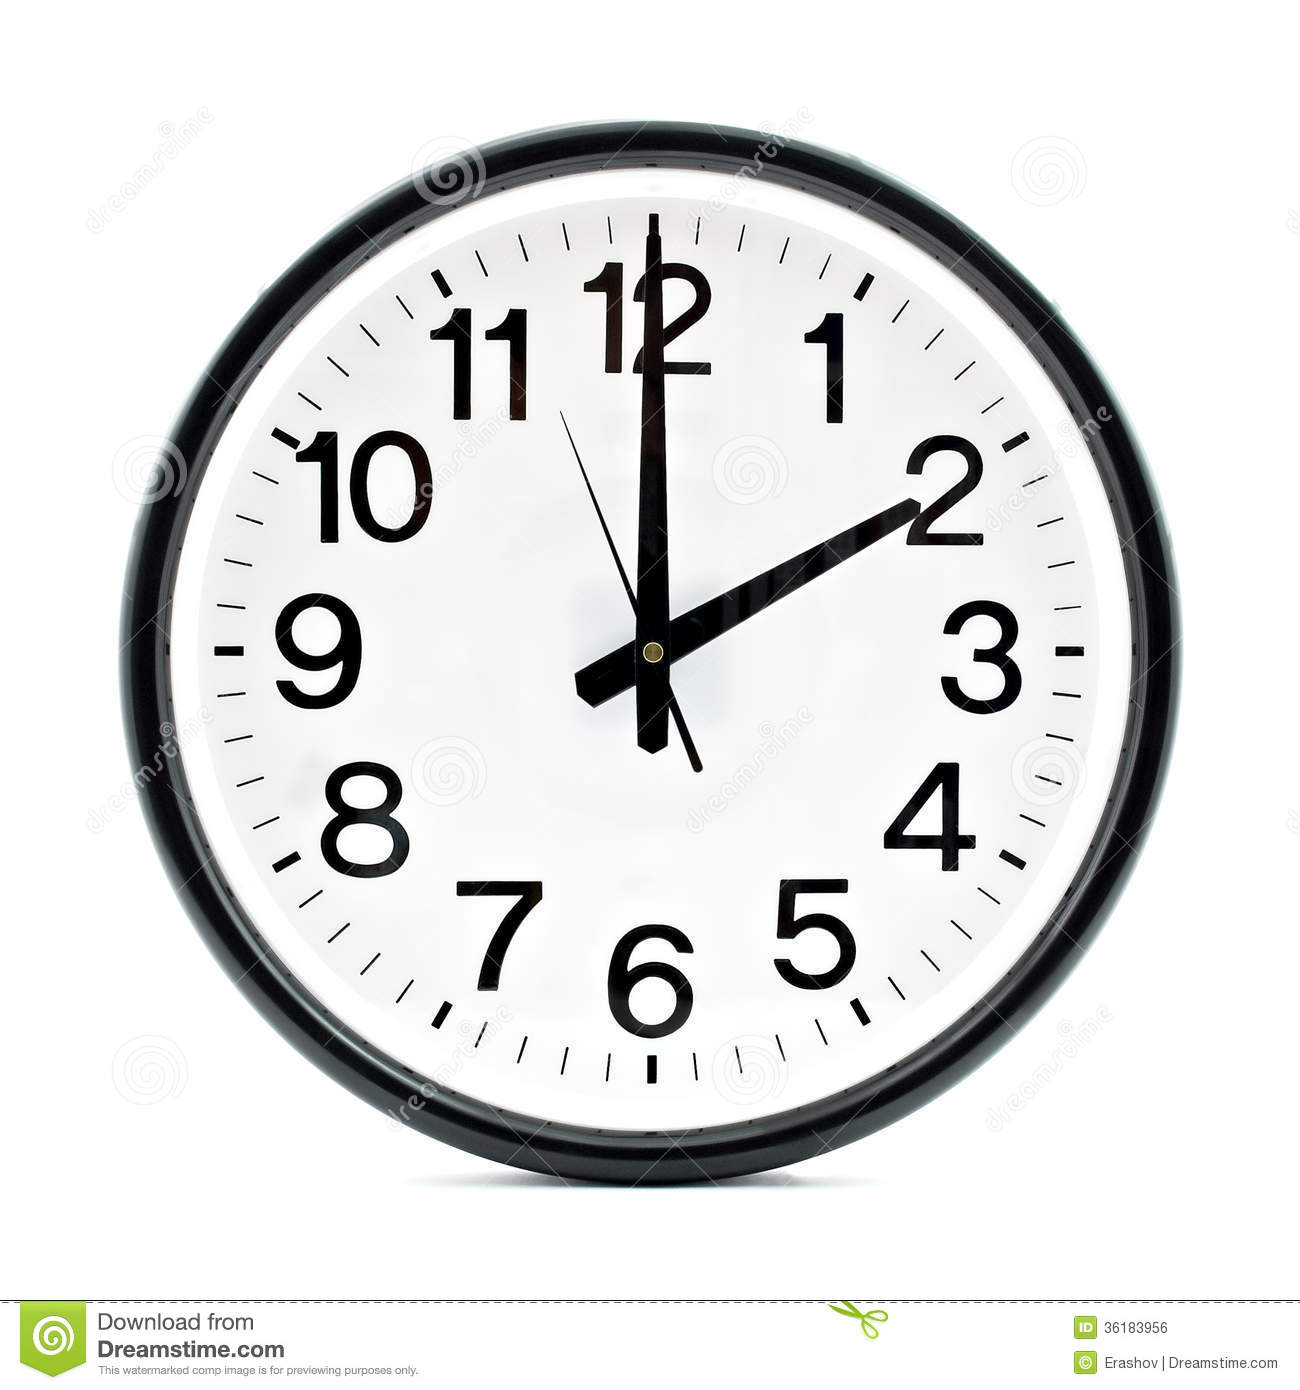 Wall clock clipart.